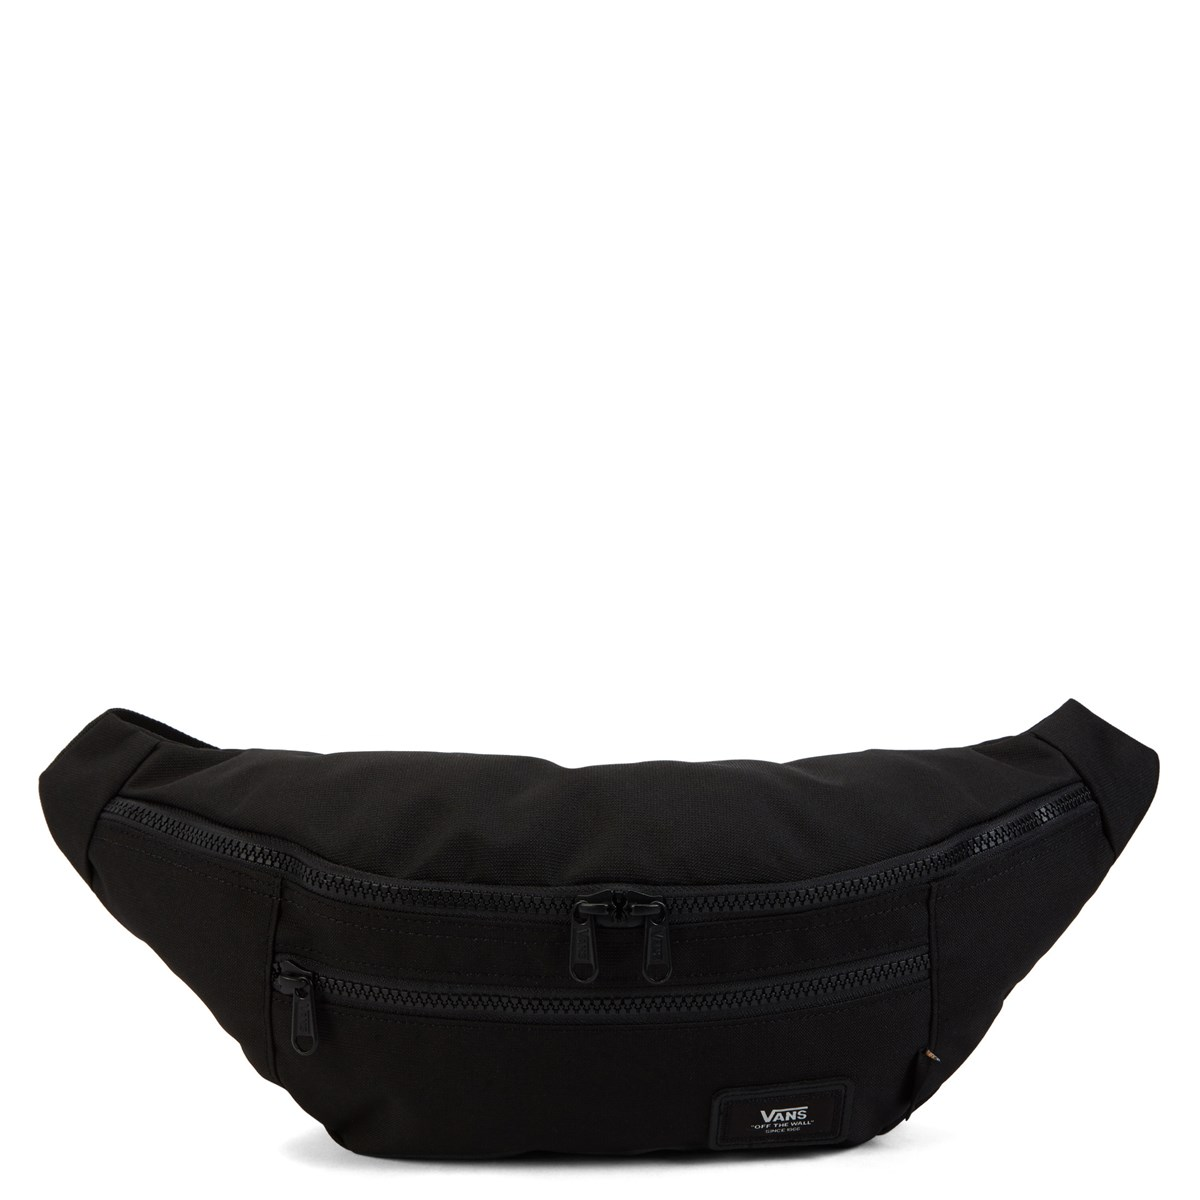 Ward Cross Fanny Pack in Black